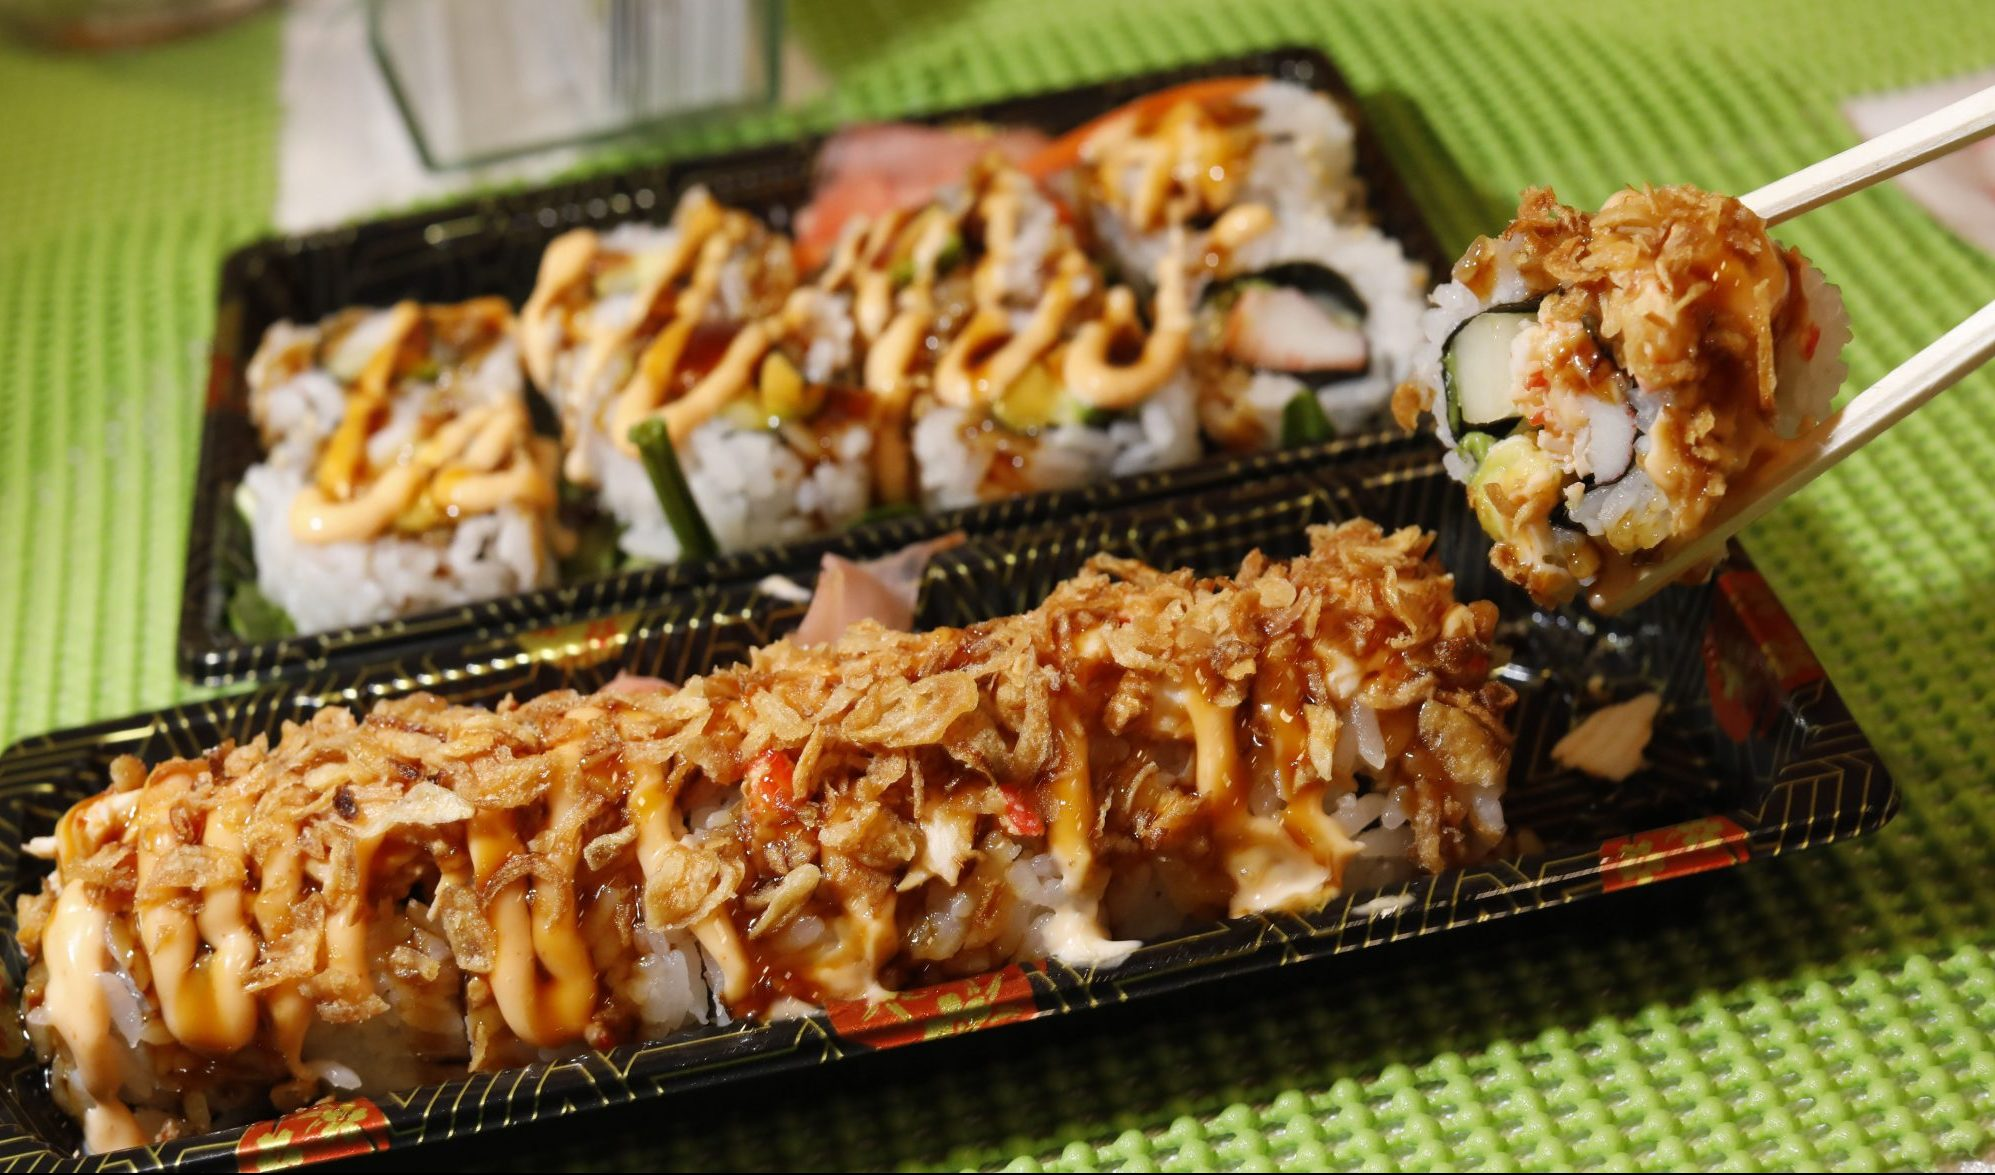 The Crunchy Dragon Roll at Man-Aung Sushi in the lobby of the Rand Building. (Derek Gee/Buffalo News)